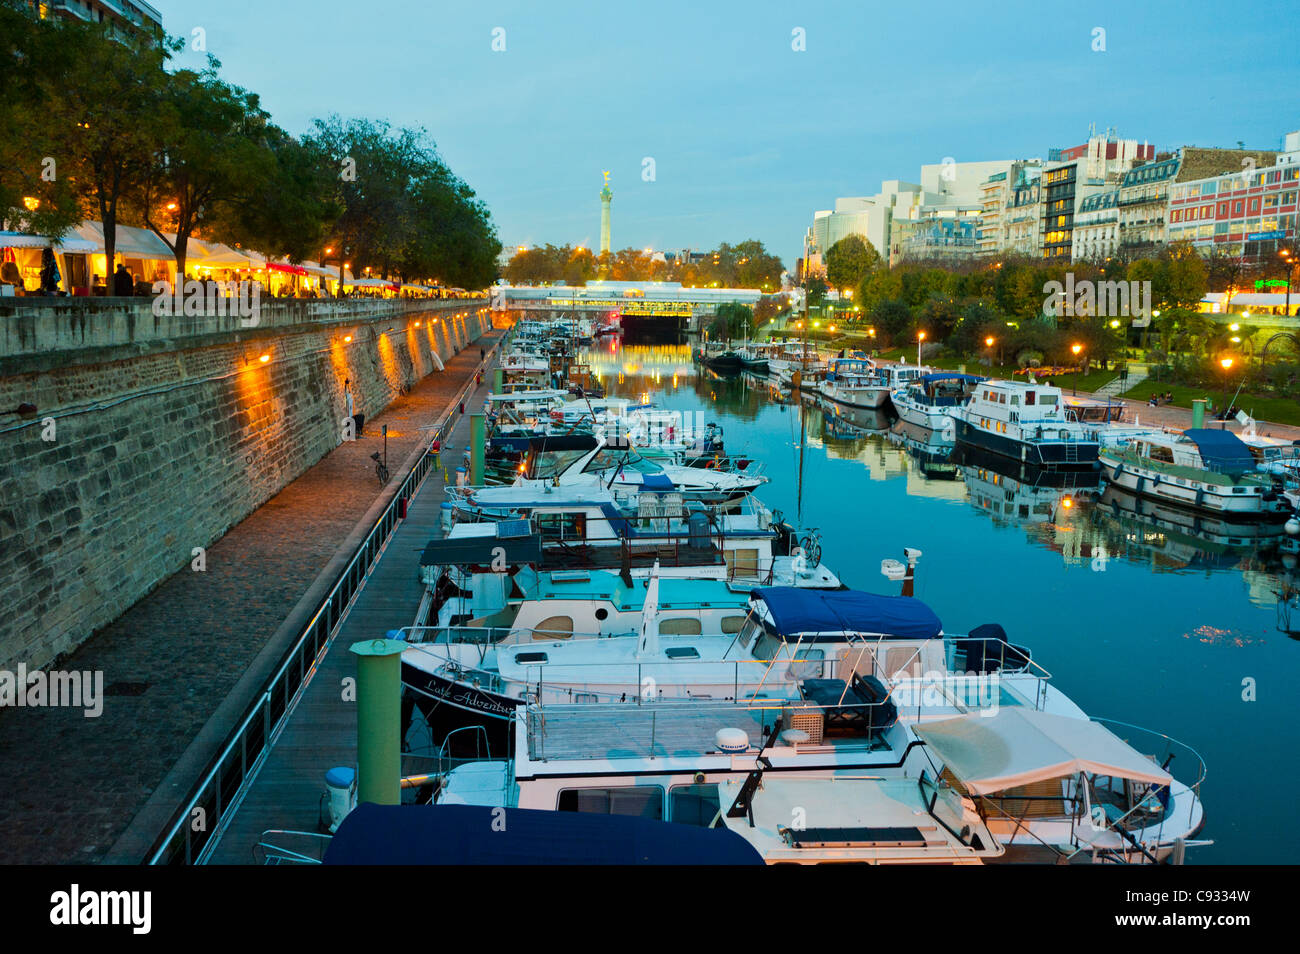 Paris, France, Canal Scenic at Dusk, with Boats near the Bastille, Port de l'Arsenal - Stock Image